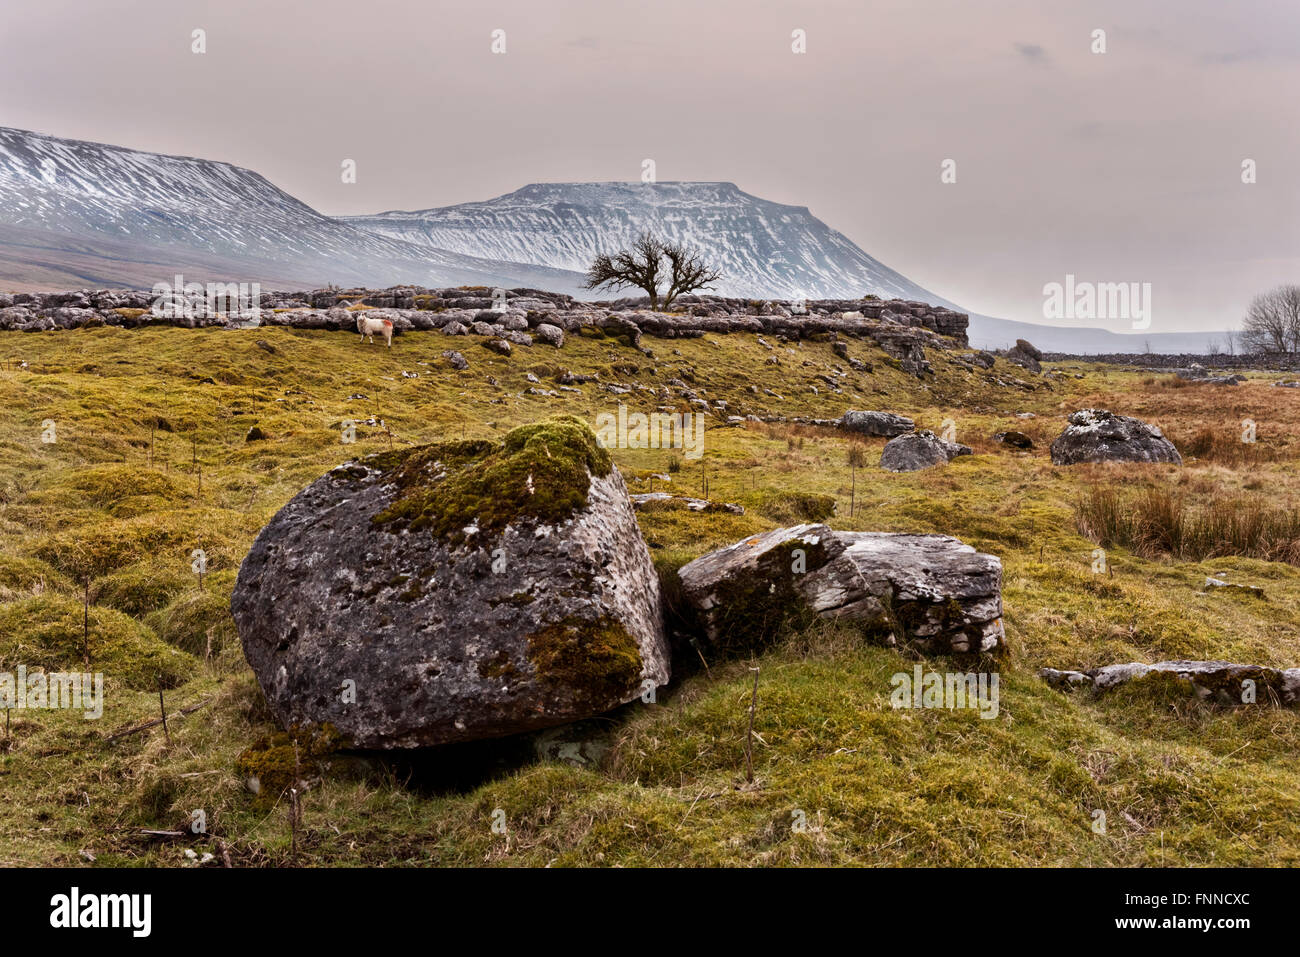 A Winter view of Ingleborough hill, Ingleton, North Yorkshire, UK. - Stock Image